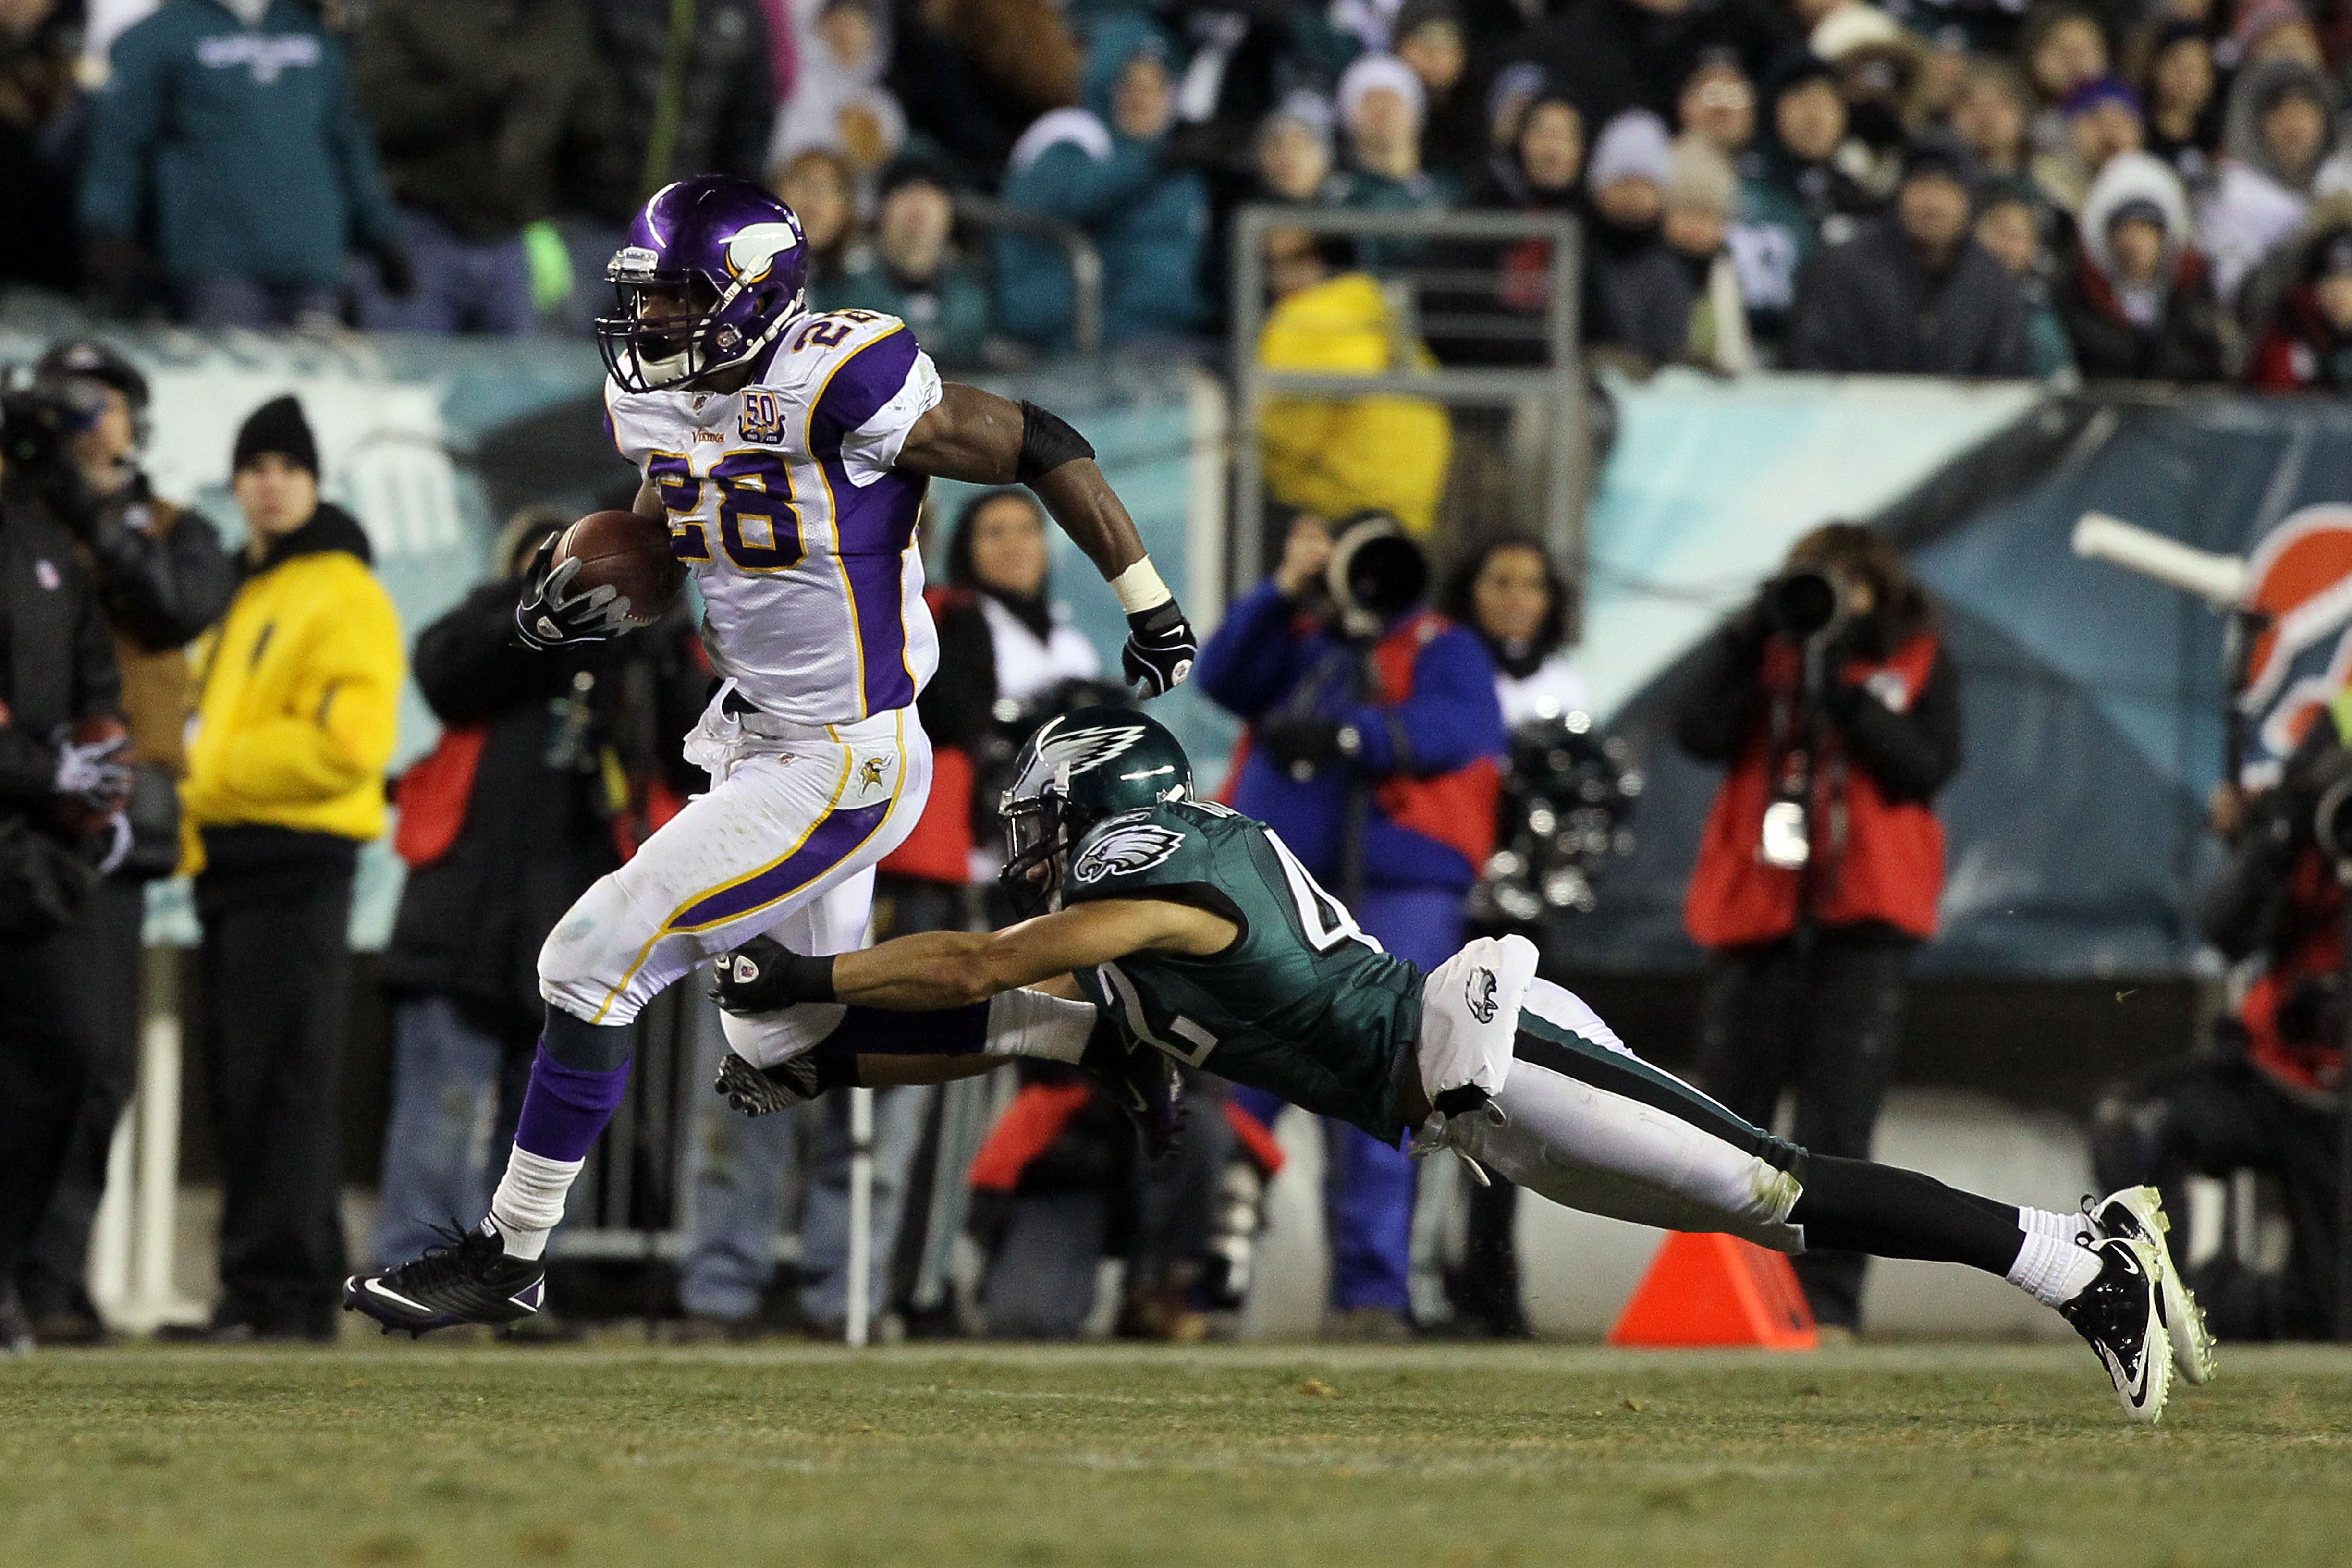 PHILADELPHIA, PA - DECEMBER 26:  Adrian Peterson #28 of the Minnesota Vikings runs against Kurt Coleman #42 of the Philadelphia Eagles at Lincoln Financial Field on December 26, 2010 in Philadelphia, Pennsylvania.  (Photo by Jim McIsaac/Getty Images)